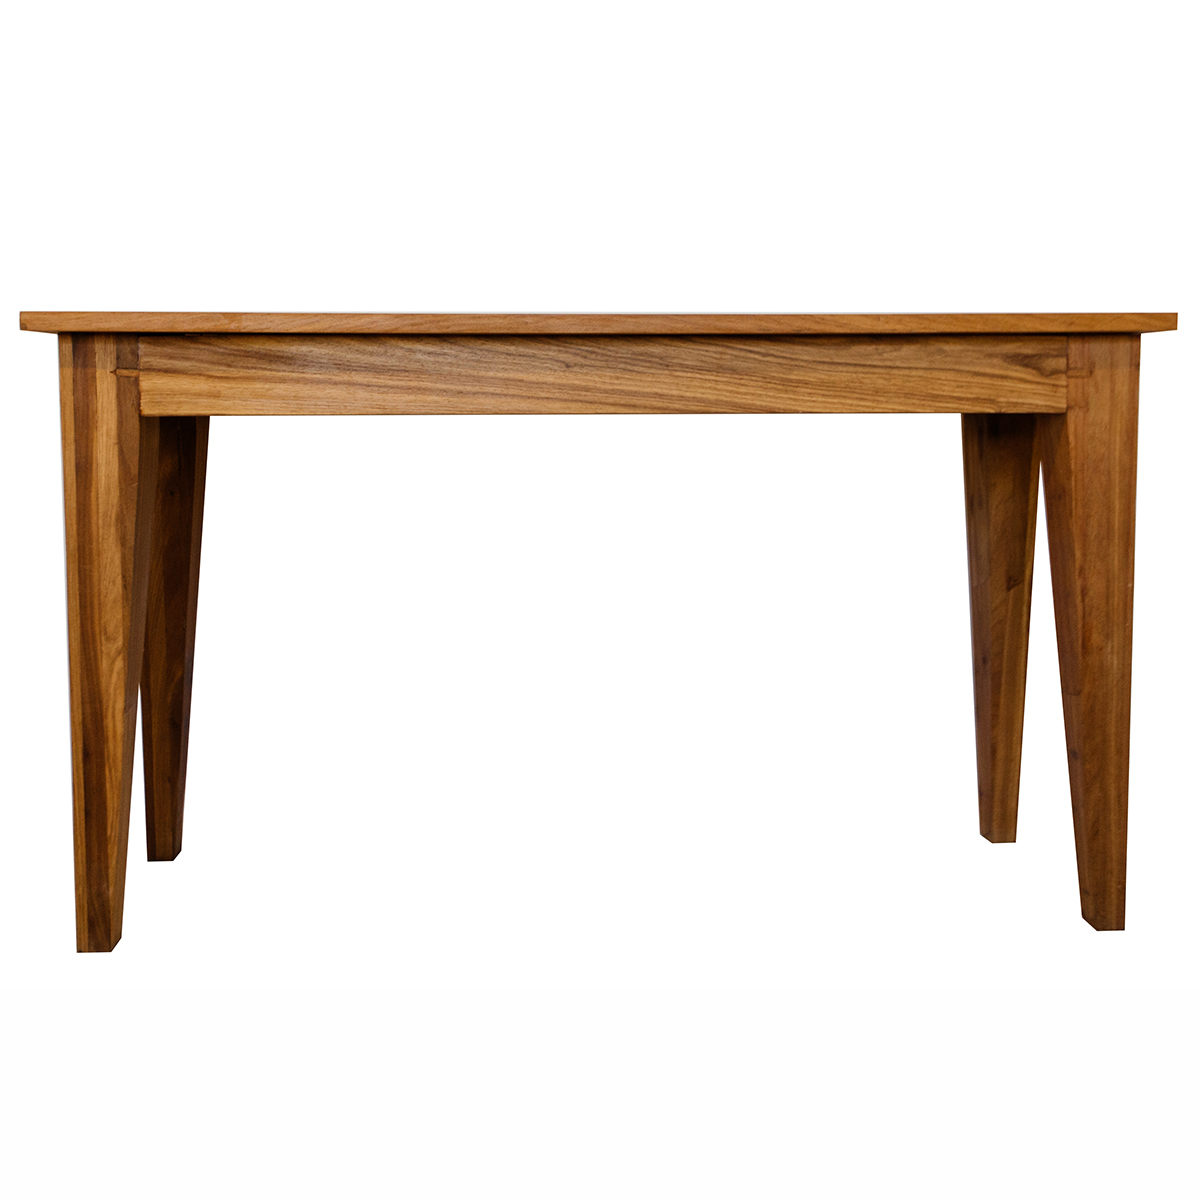 Live Simple | Wooden Nicola Table